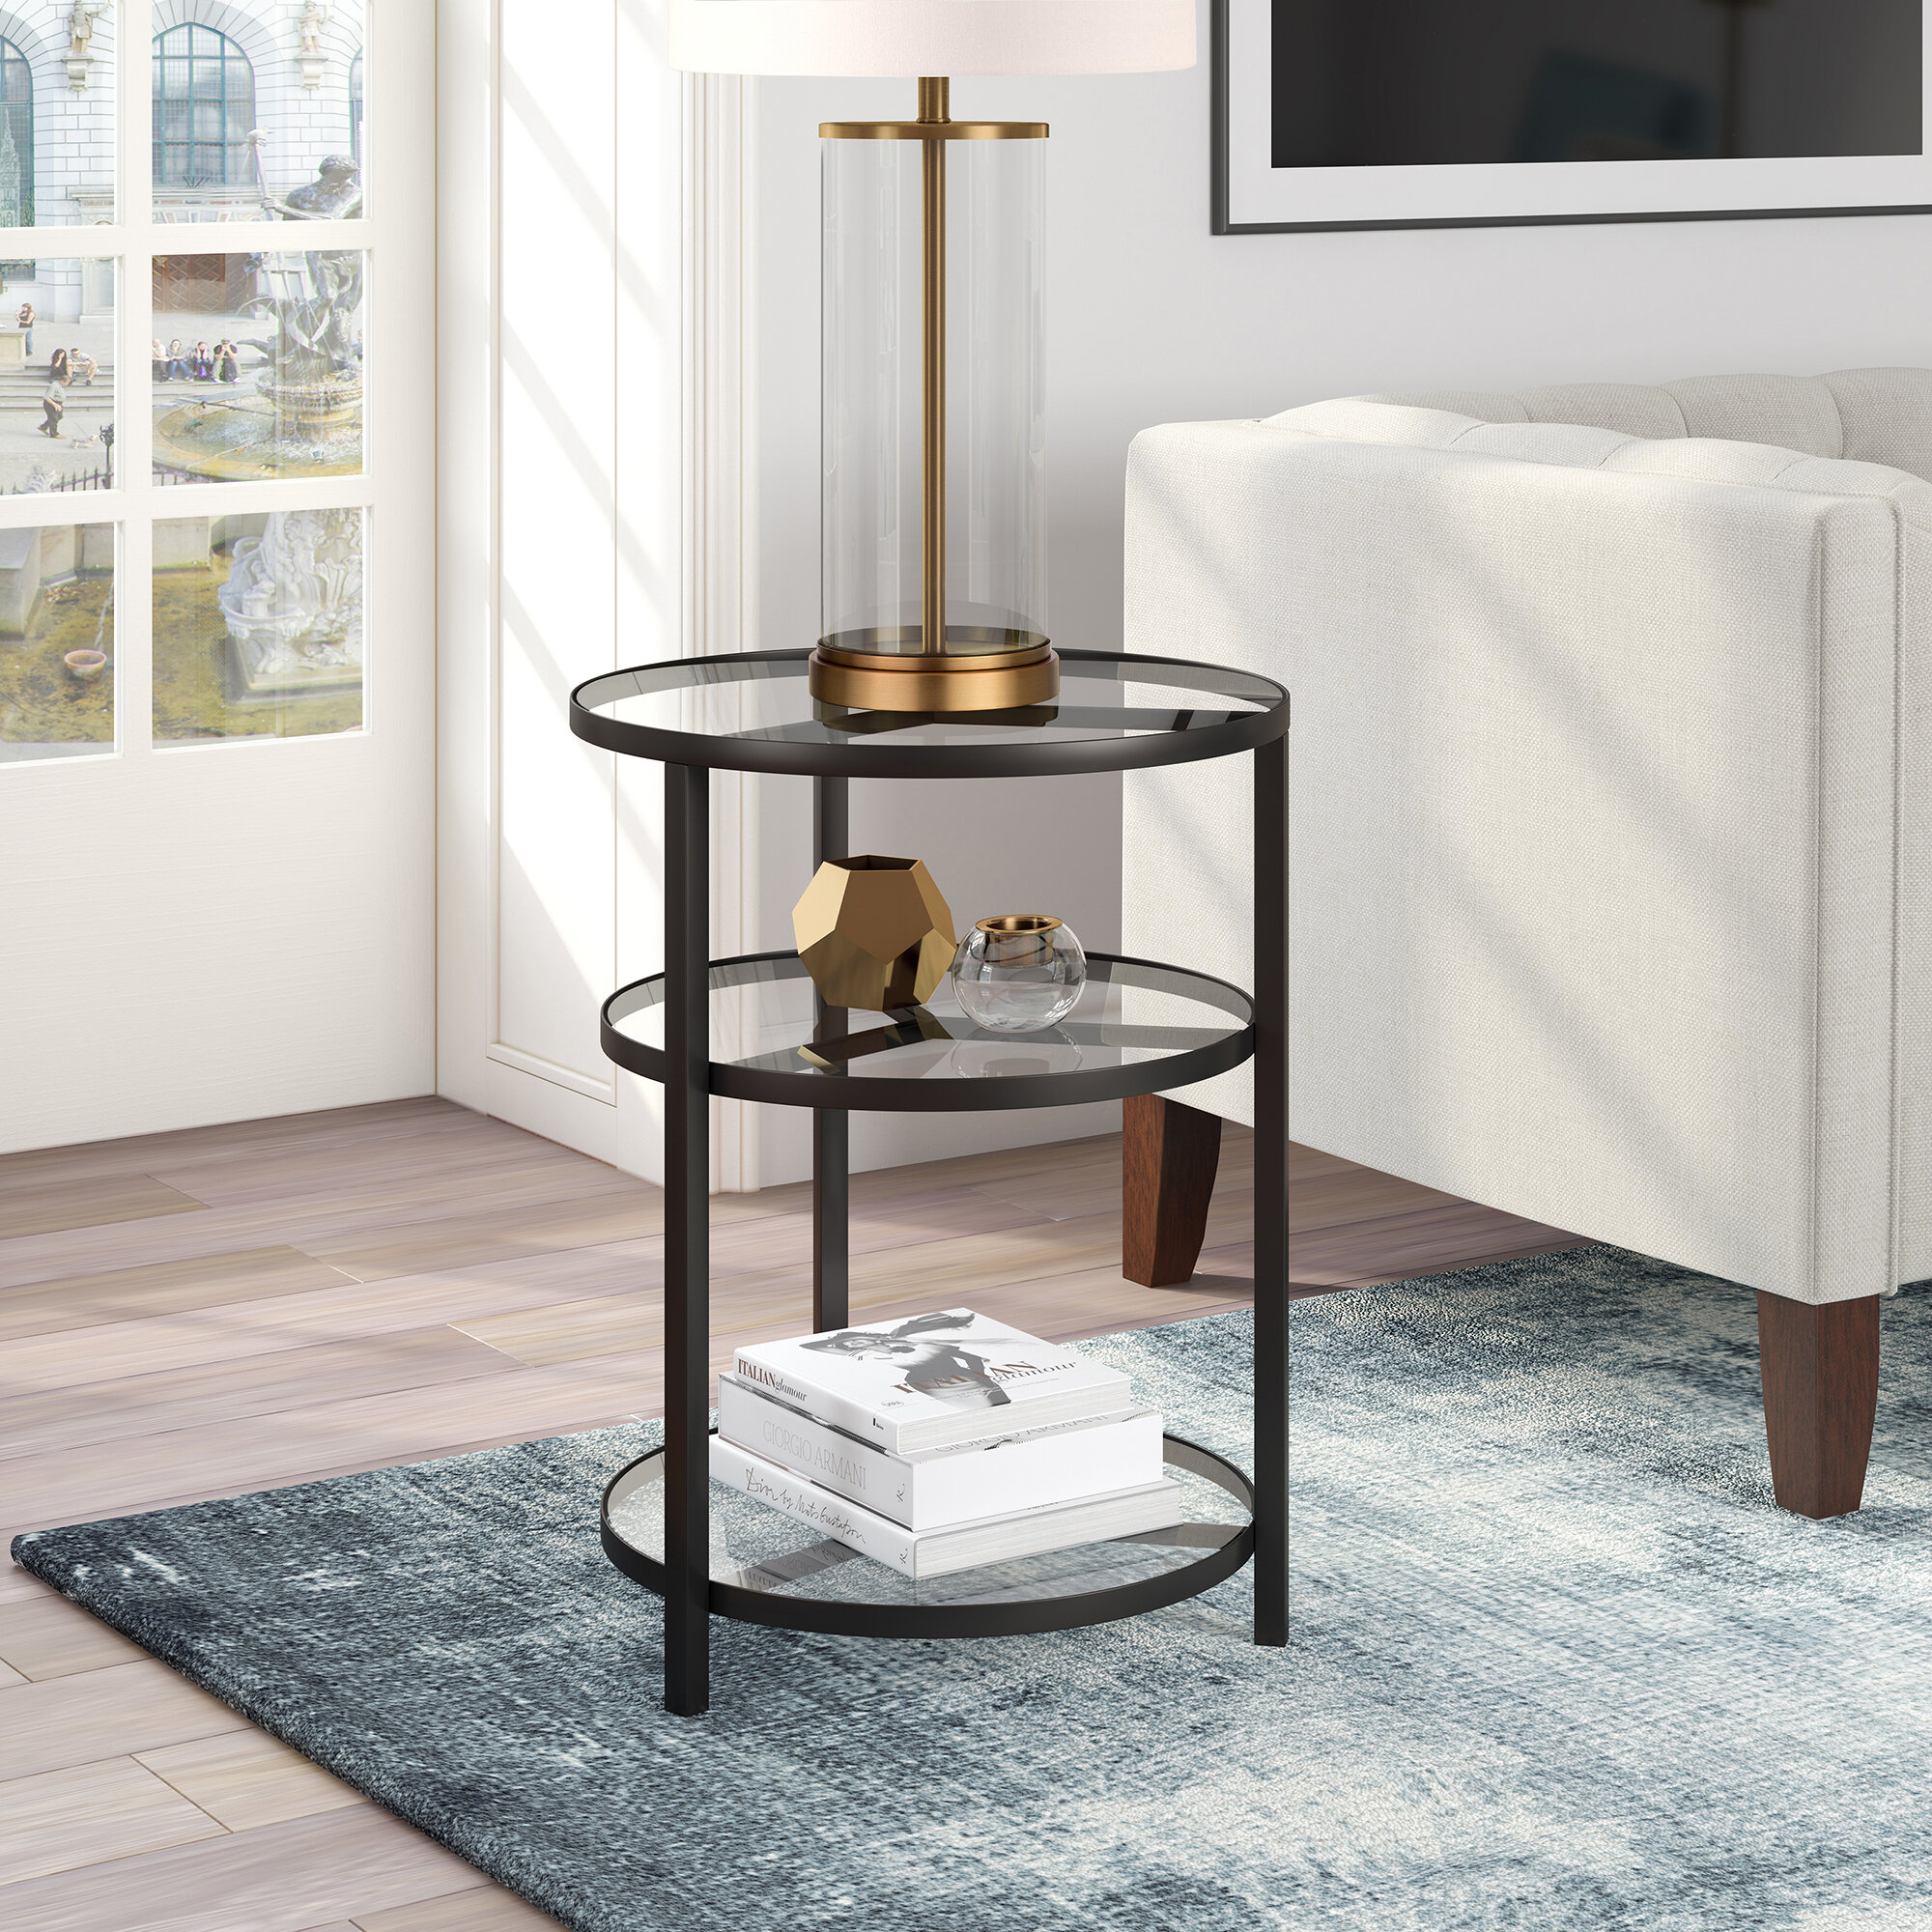 Breakwater Bay Goncalves Glass Top 3 Legs End Table With Storage Reviews Wayfair